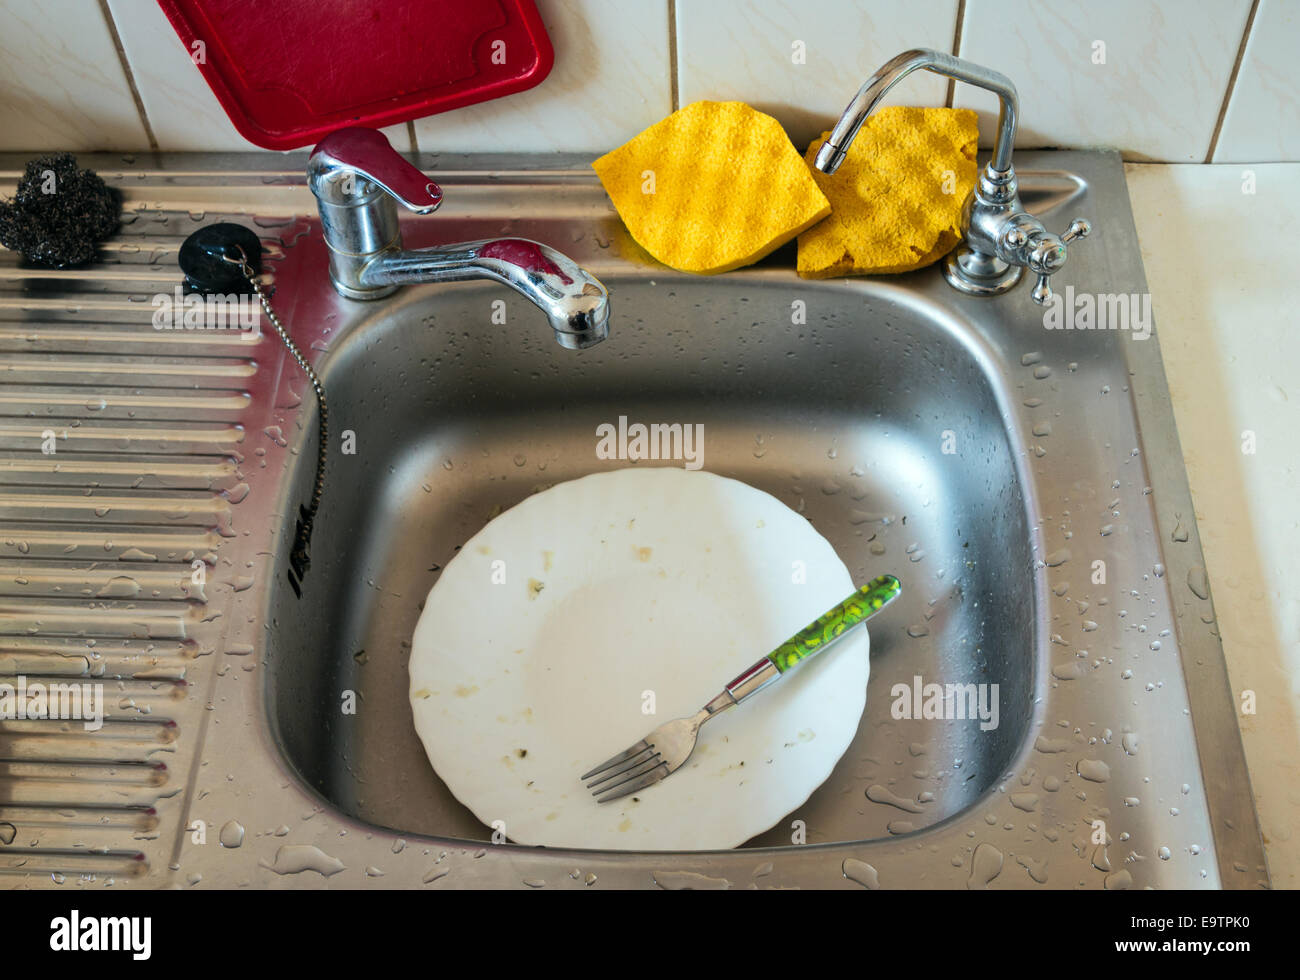 Unwashed dish in kitchen sink - Stock Image